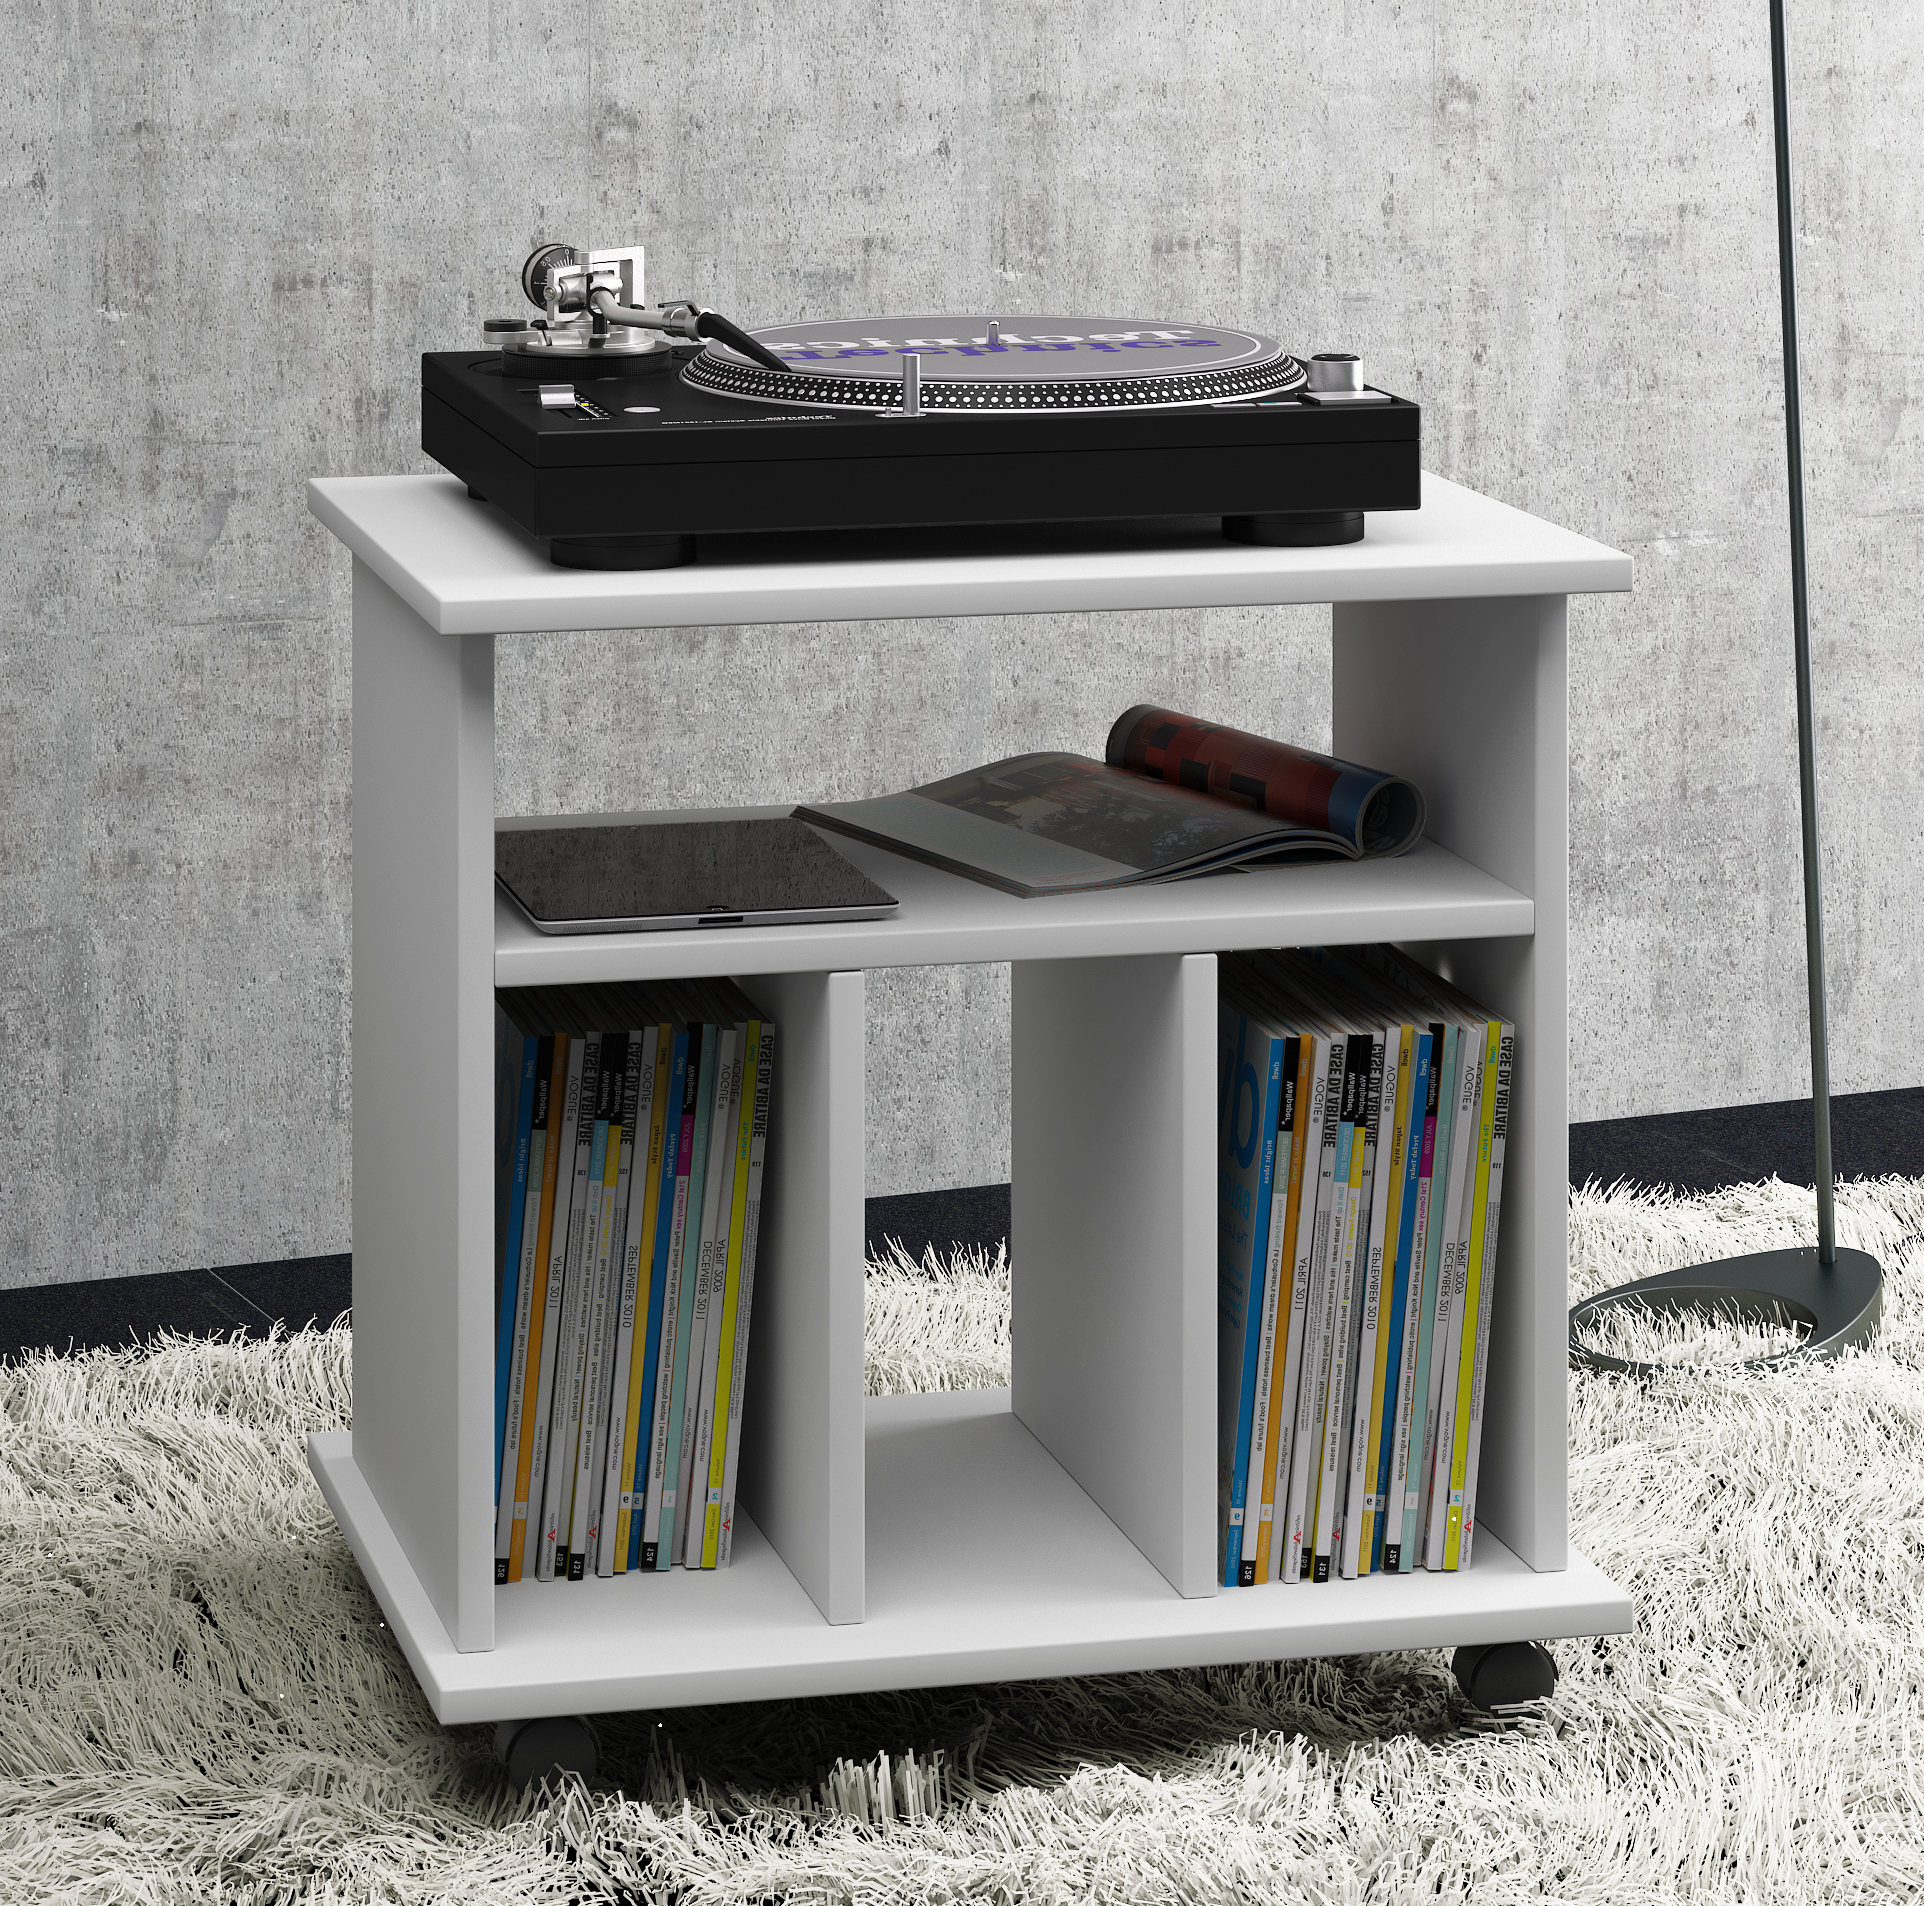 Ikea Phonomöbel Vcm Lp-möbel Regal Schallplatten Phonomöbel | Kaufland.de